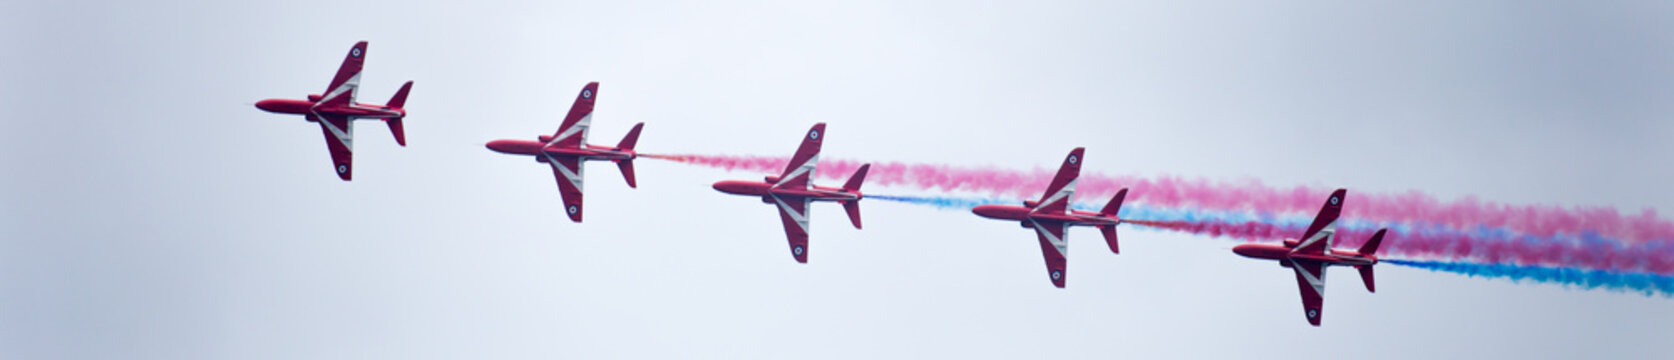 RAF Red Arrows in Line